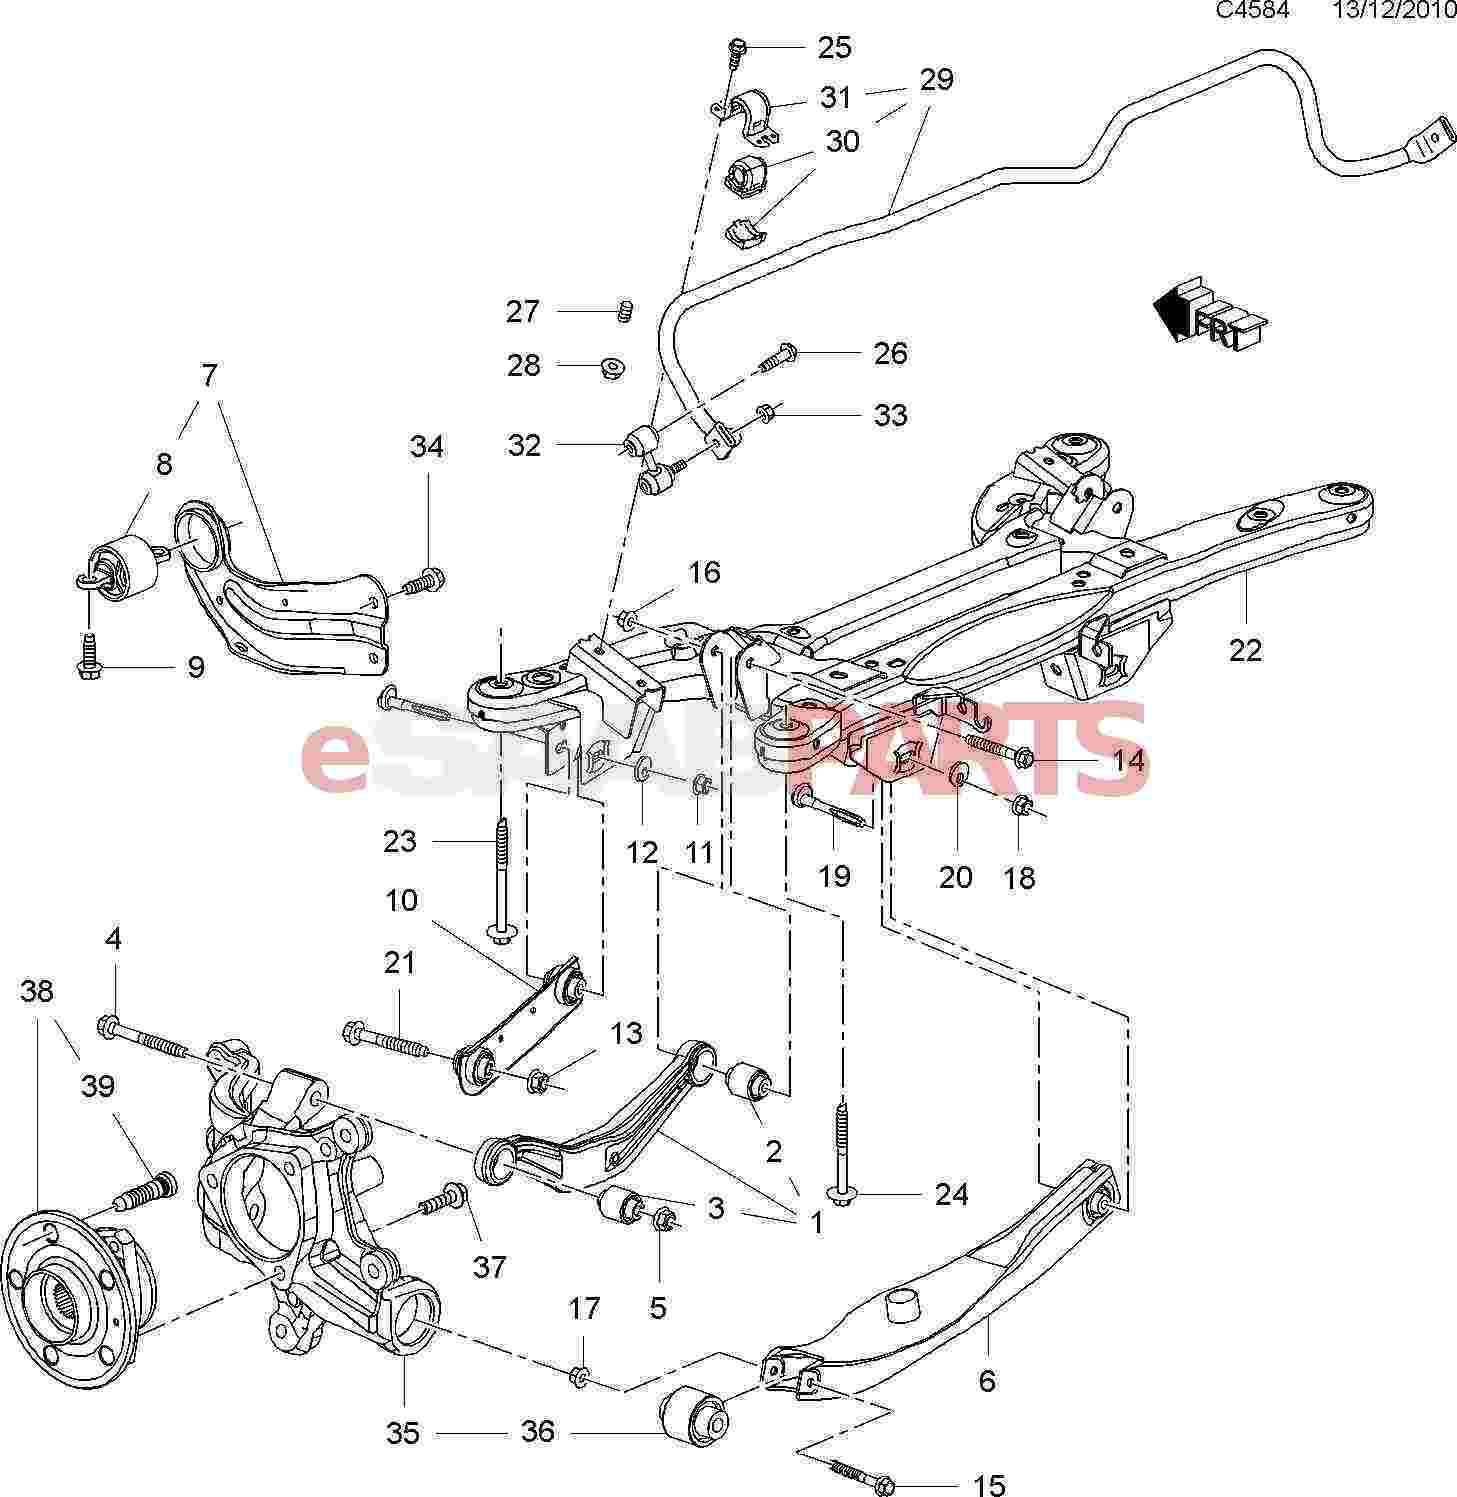 Saab 900 2 0 Engine Diagram. Saab. Auto Wiring Diagram